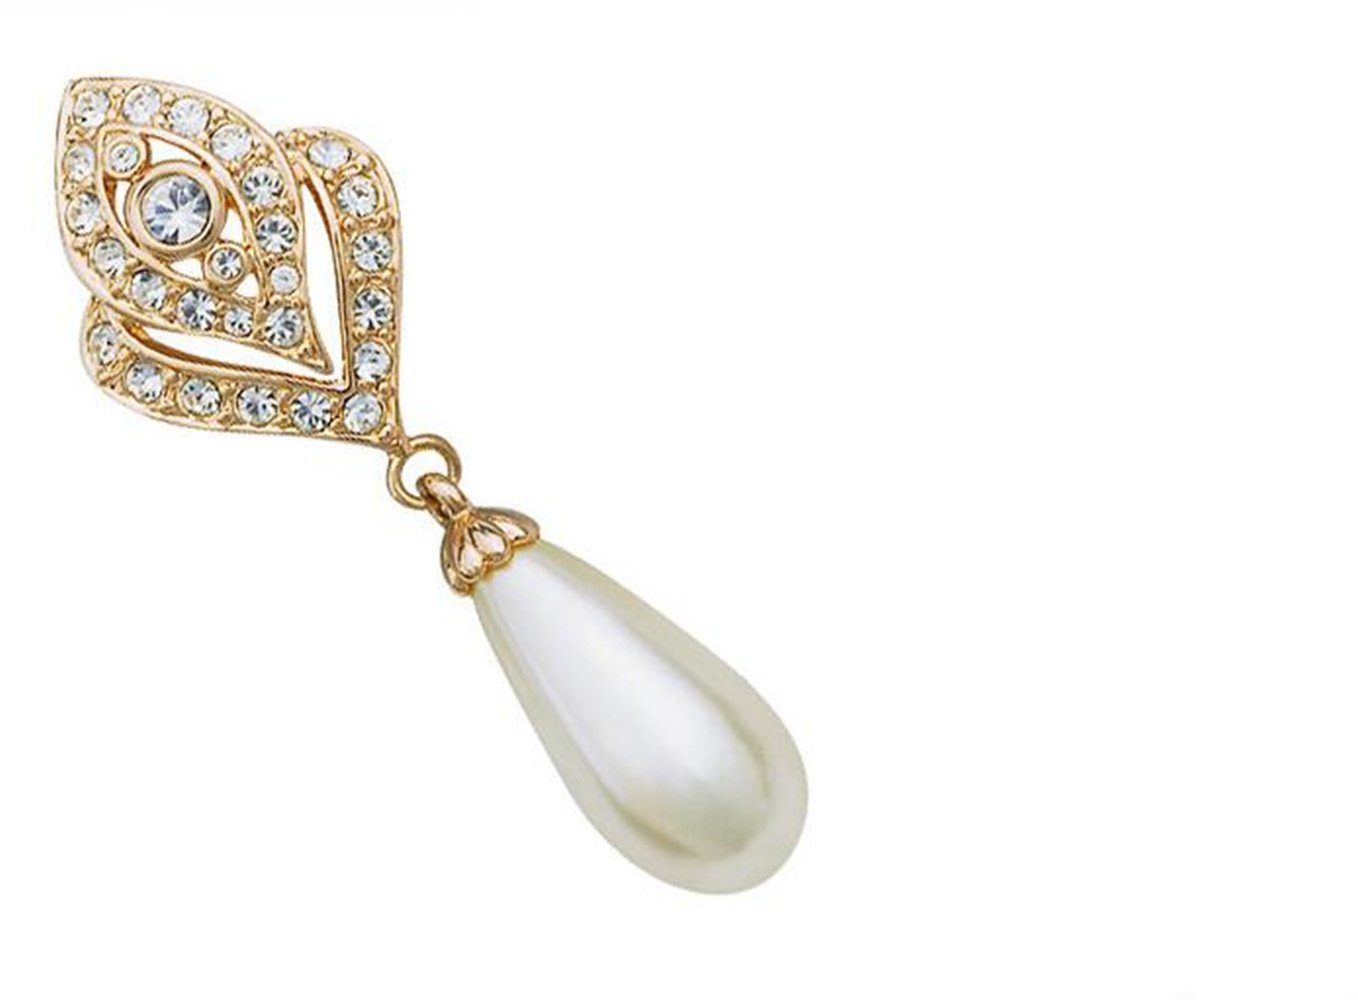 Clip On Pearl Dangle Earrings for Women, 18K Gold Plated , Art Deco Vintage Wedding Style by cckiise (Image #2)